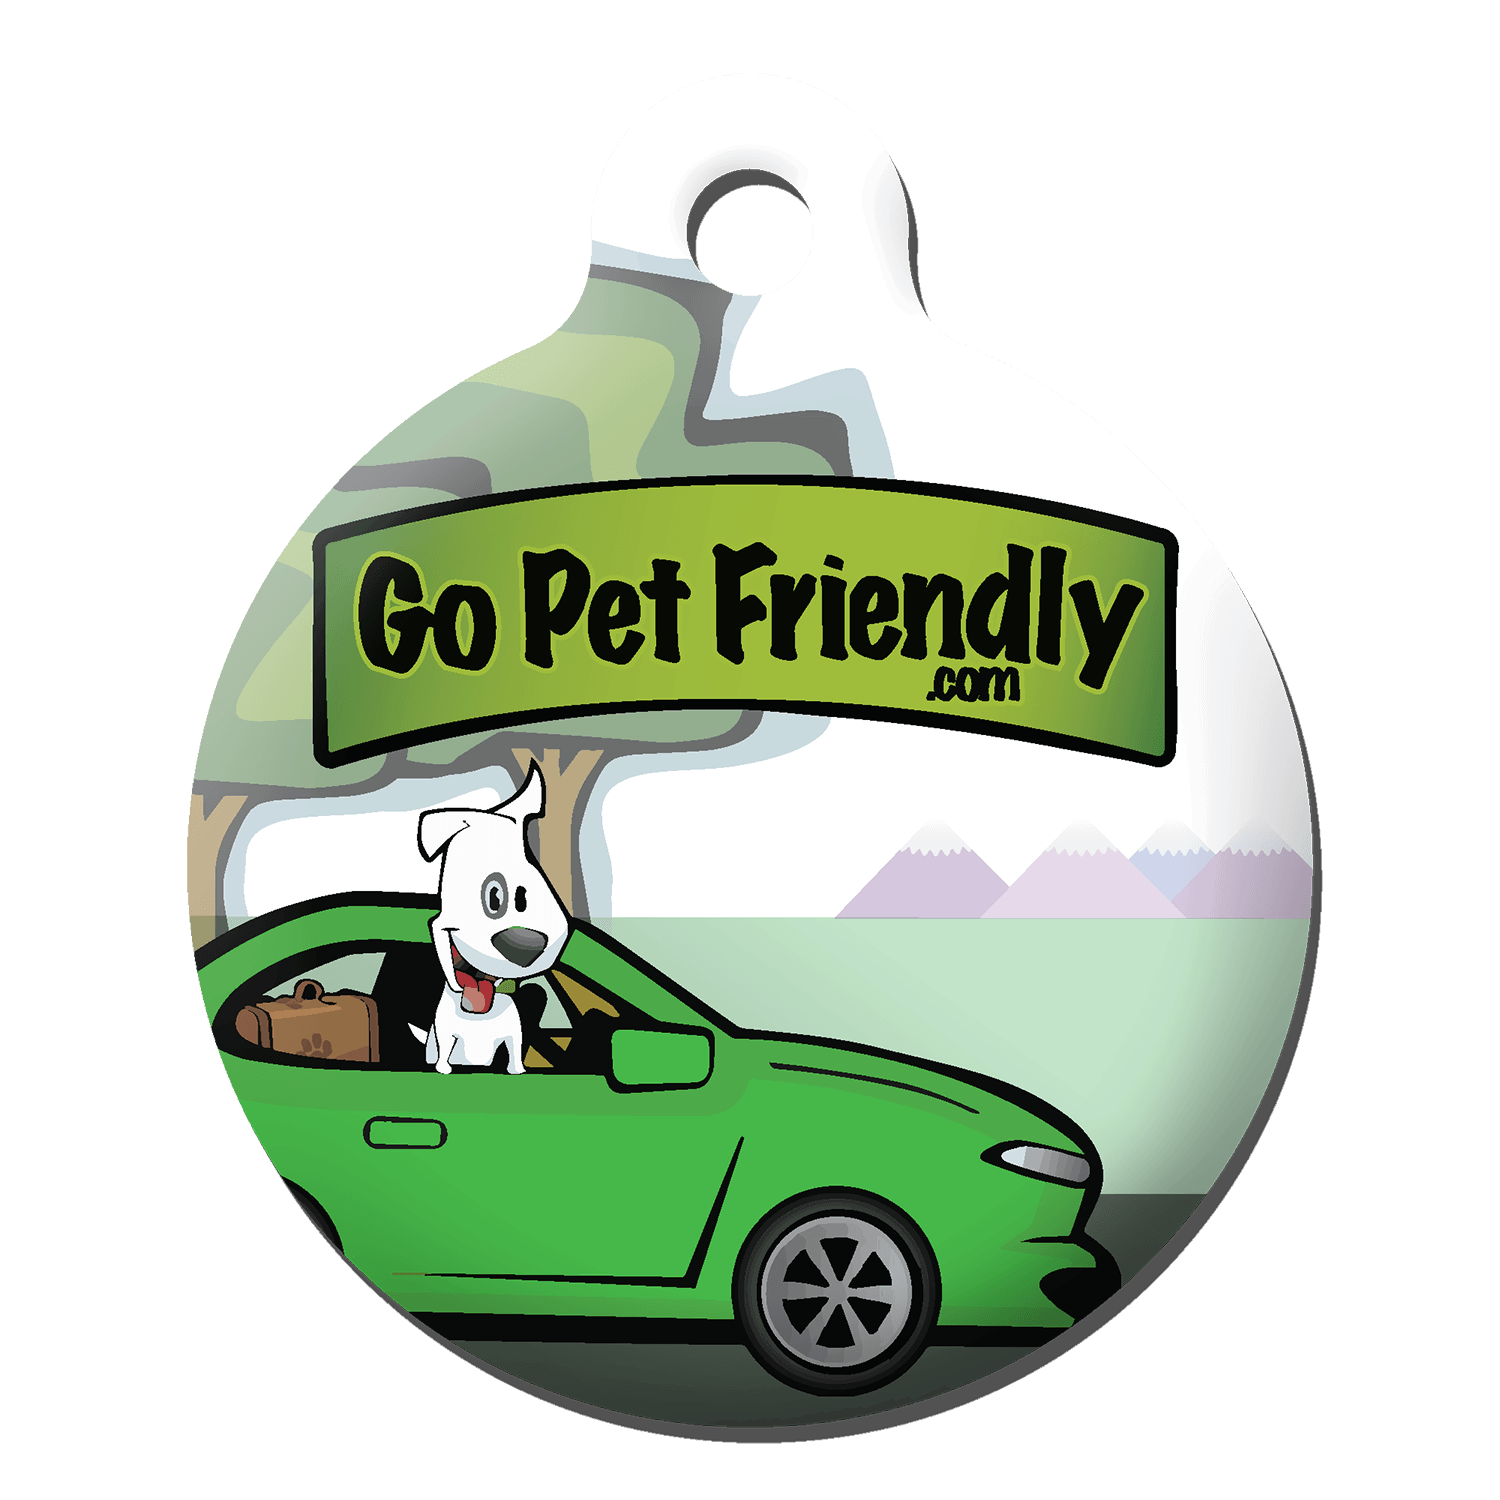 PetHub Tag Design for GoPetFriendly.com